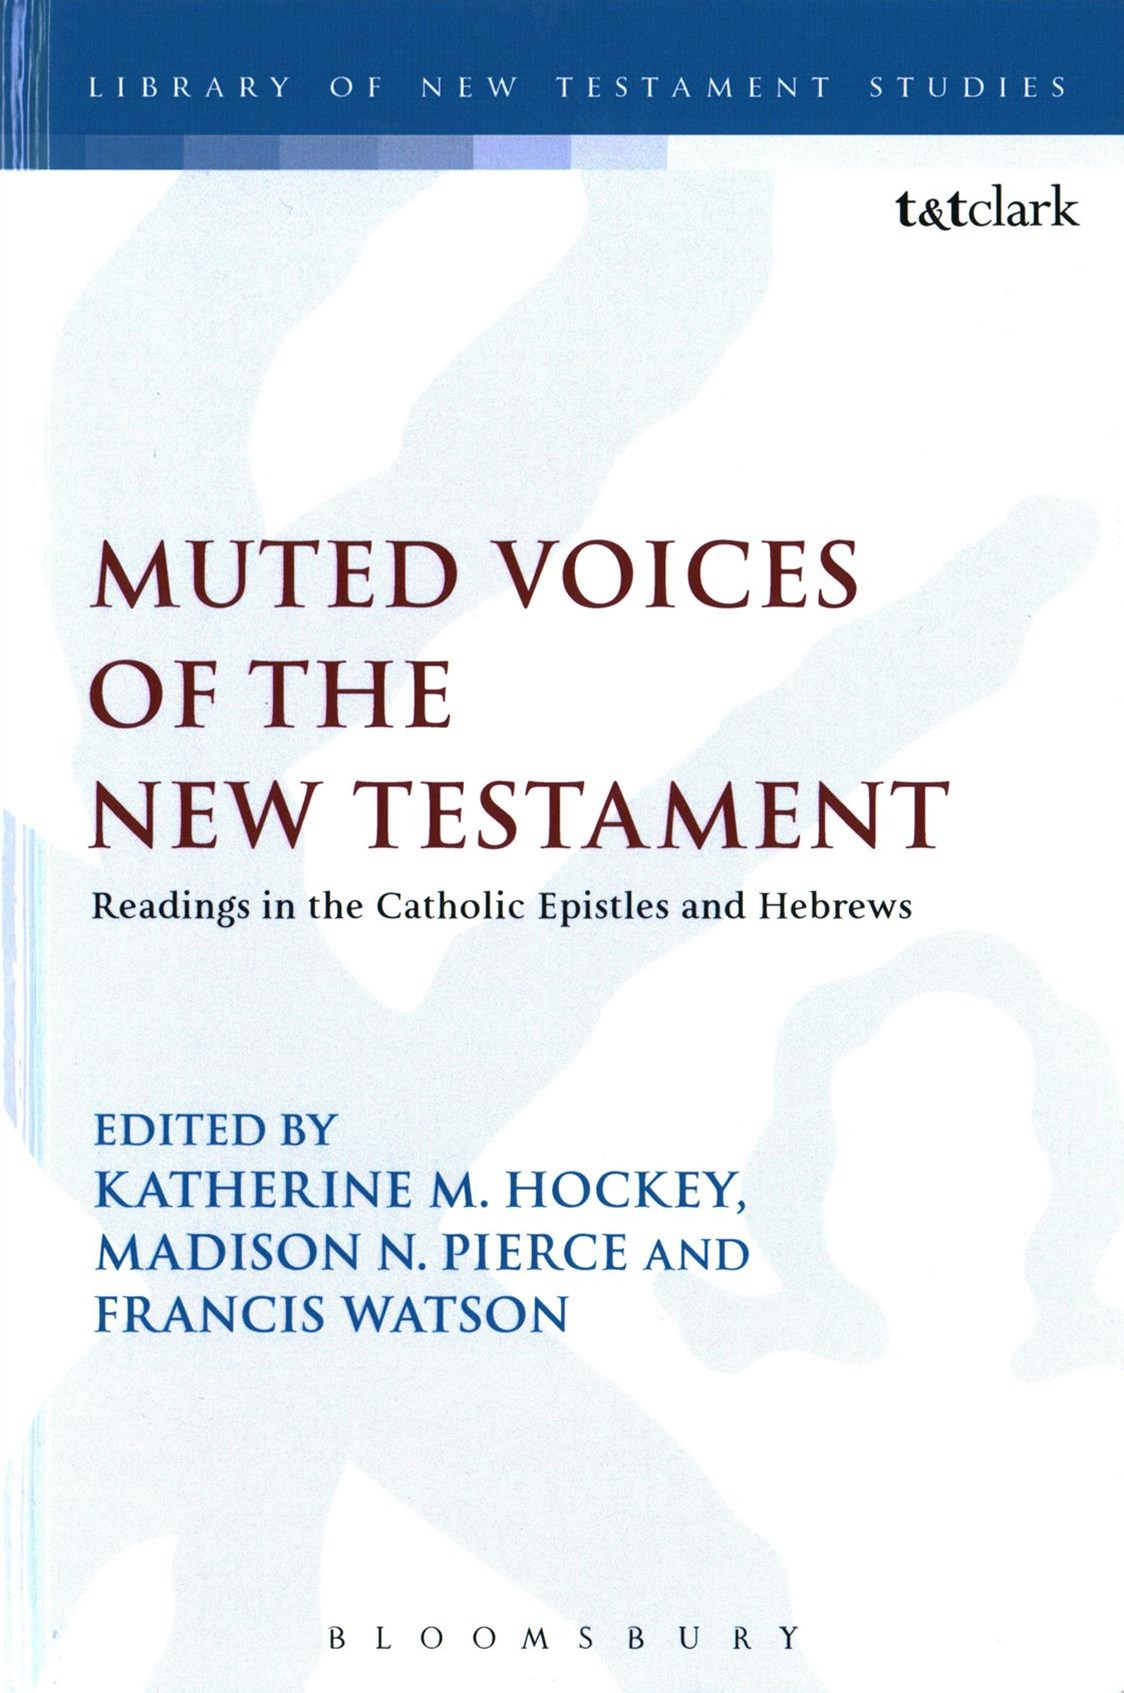 Muted Voices of the New Testament